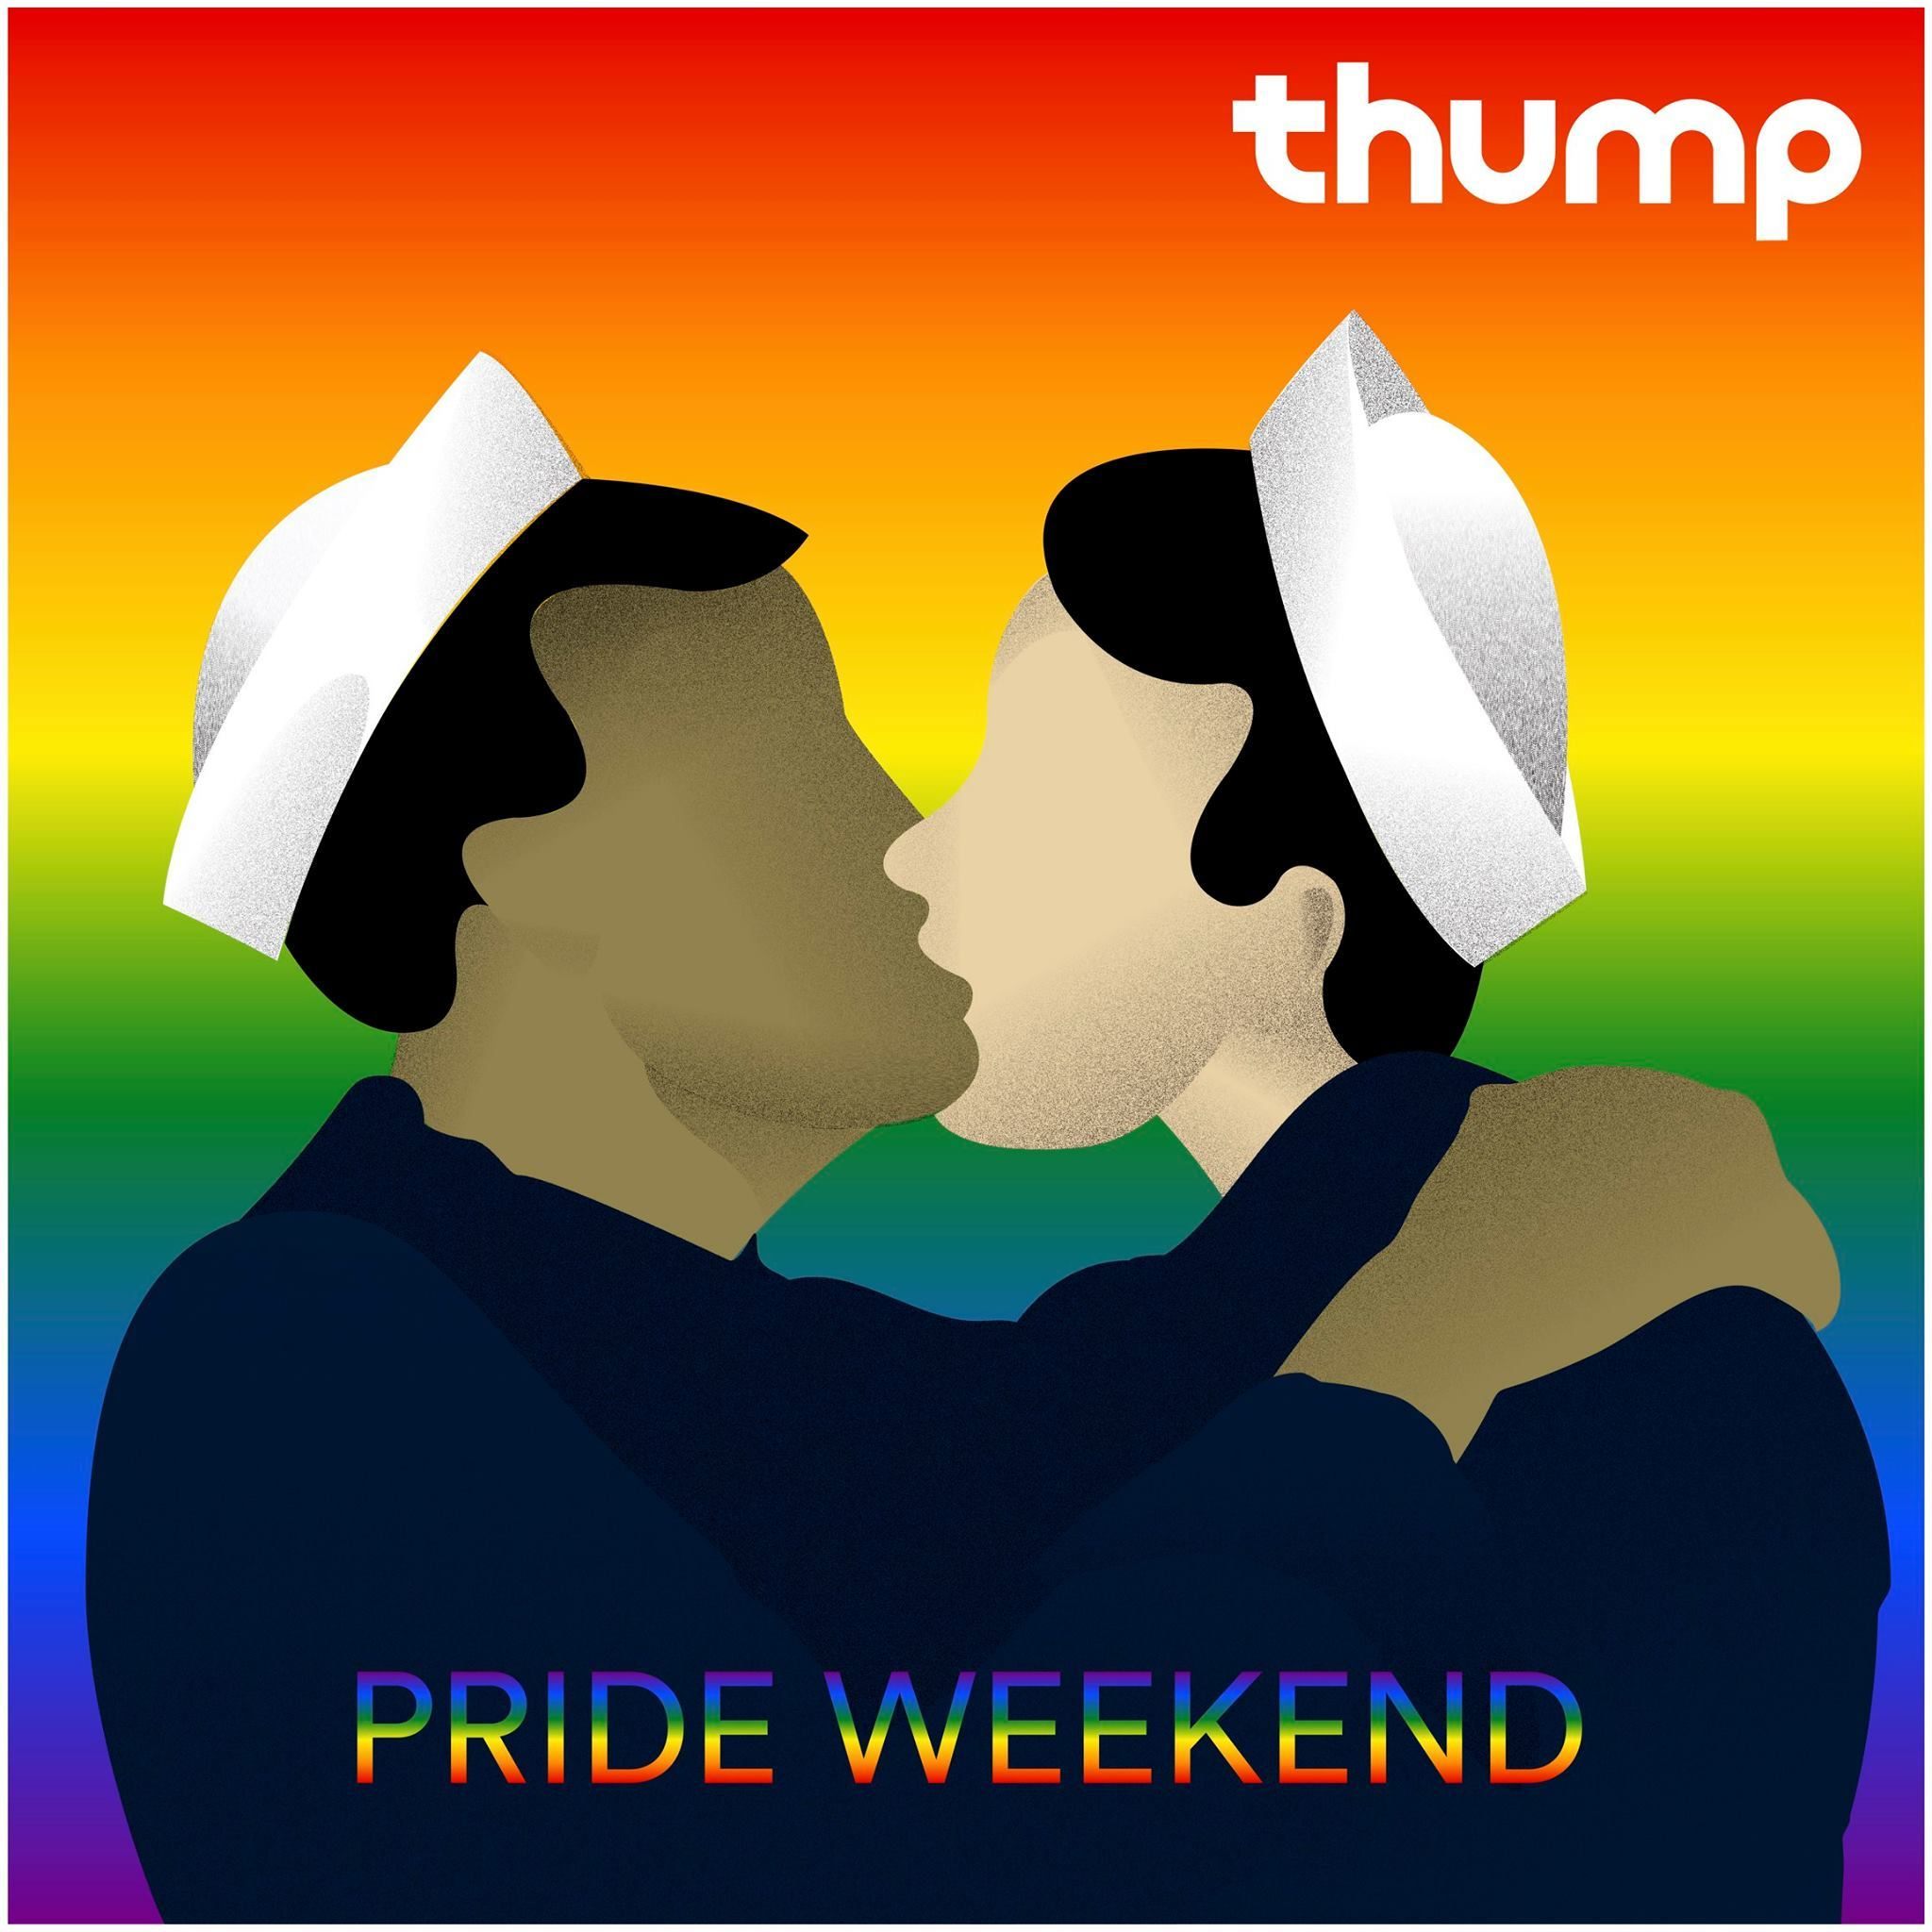 i went to a corporate pride event and it was complicated thump